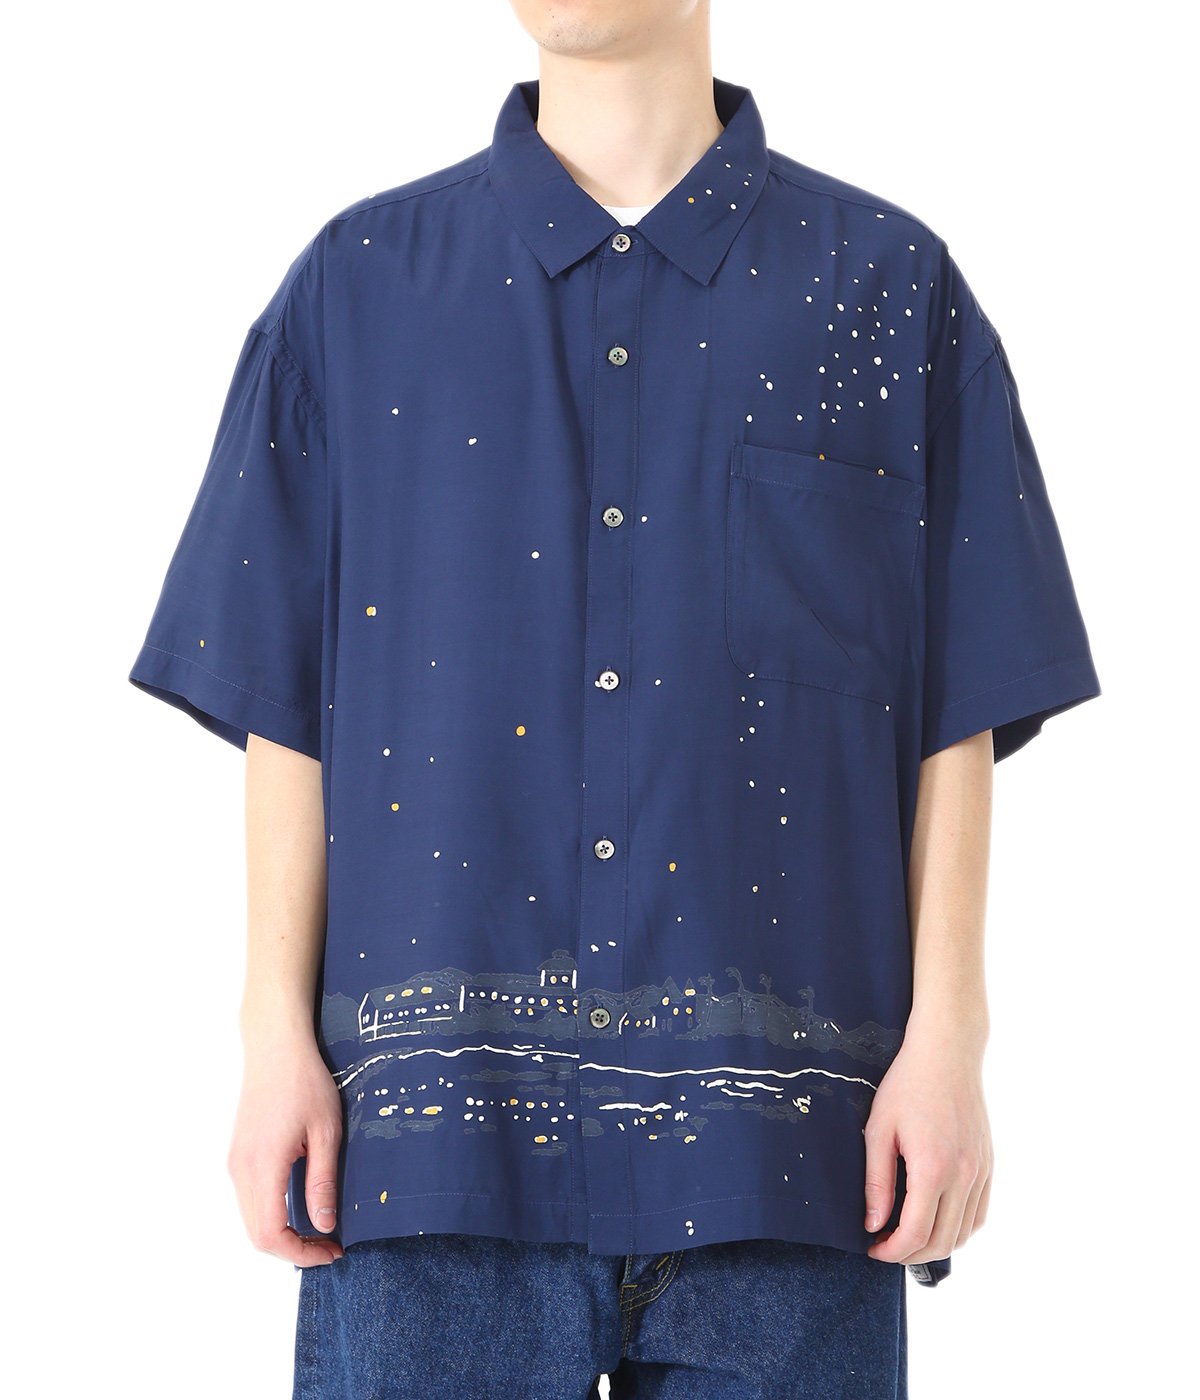 HONOLULU MOON NIGHT  ALOHA SHIRT